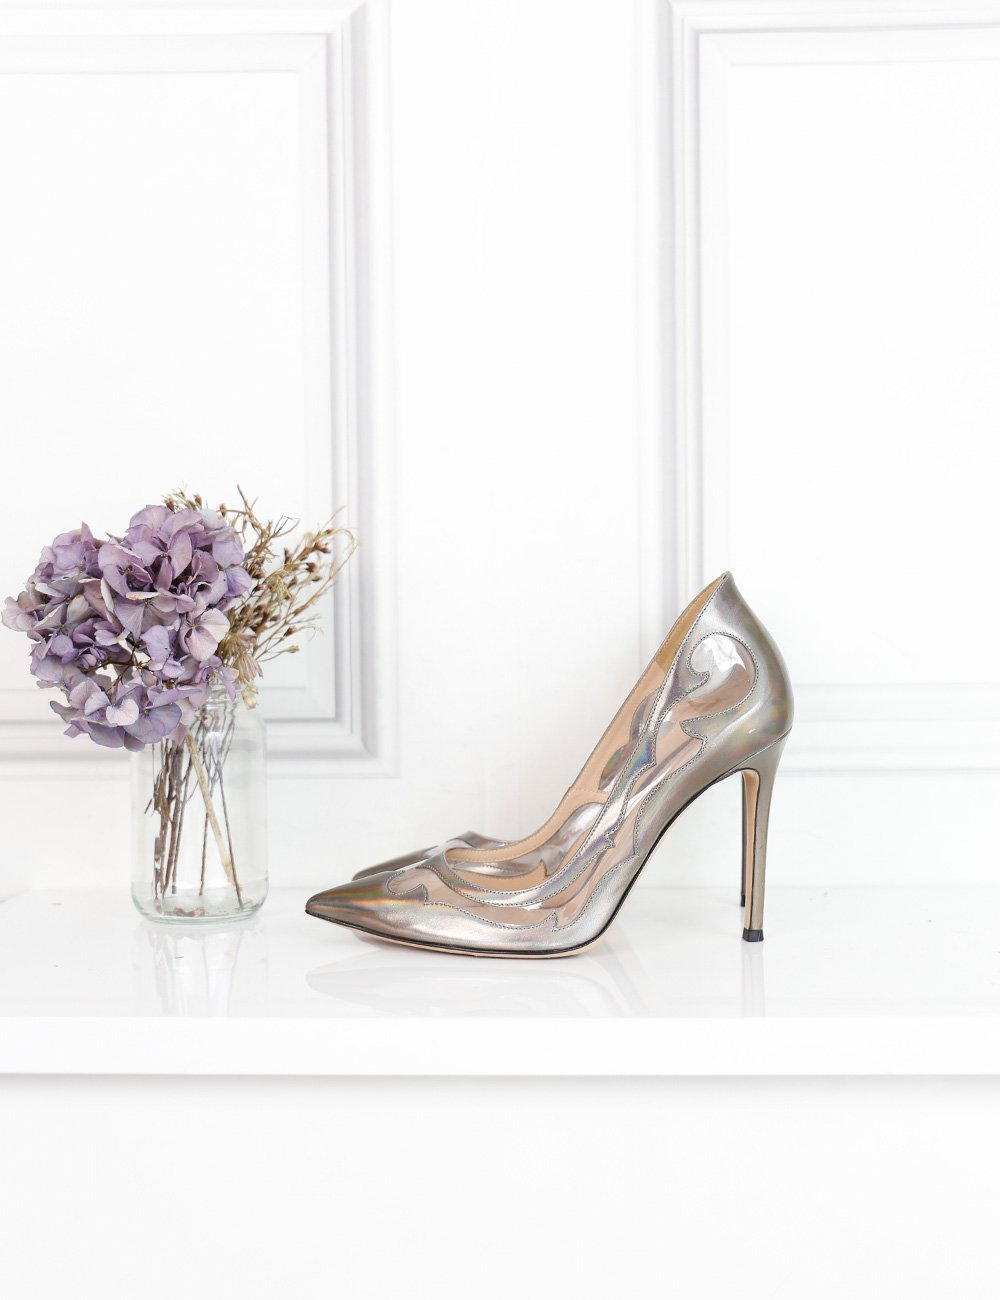 Gianvito Rossi multicolour pointed toe pumps with sheer details 5.5UK- My Wardrobe Mistakes